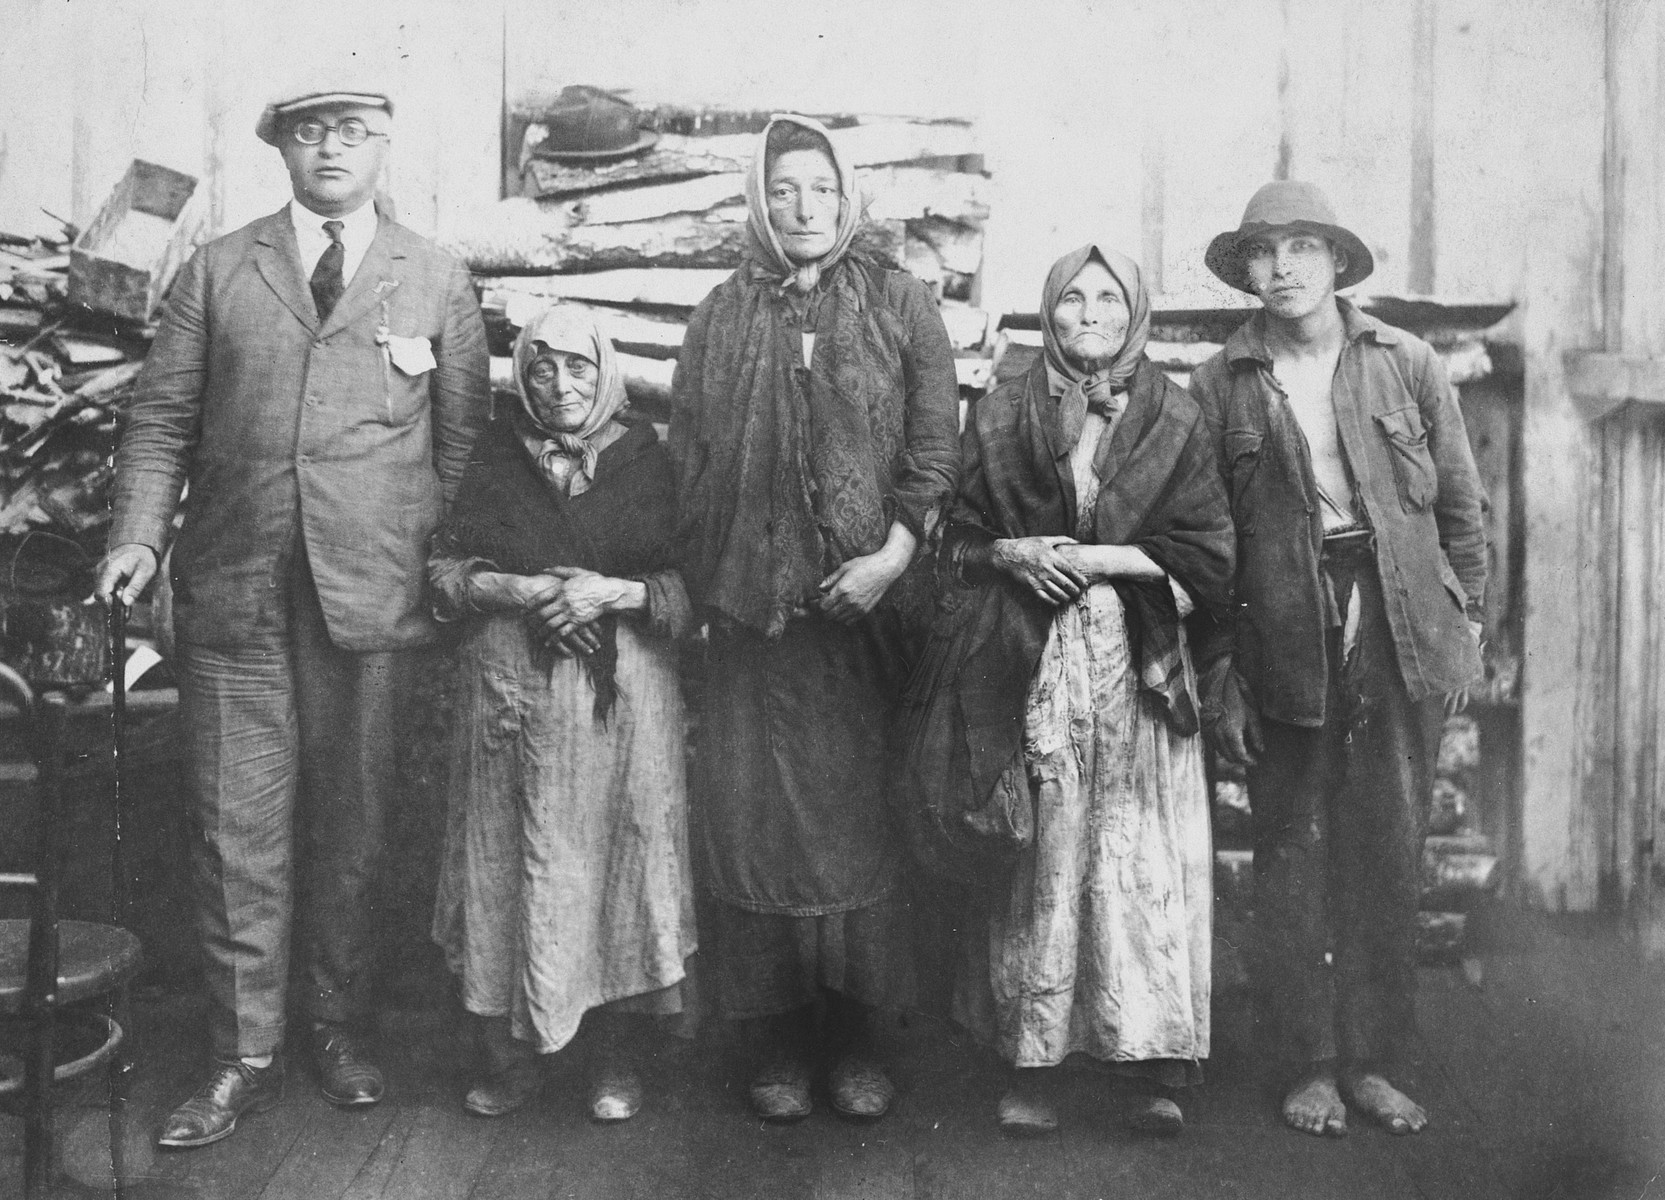 A group portrait of impoverished Jews in Drohobycz standing in front of a stack of lumber.  On the far left is Harry Handel, who is visiting from America.